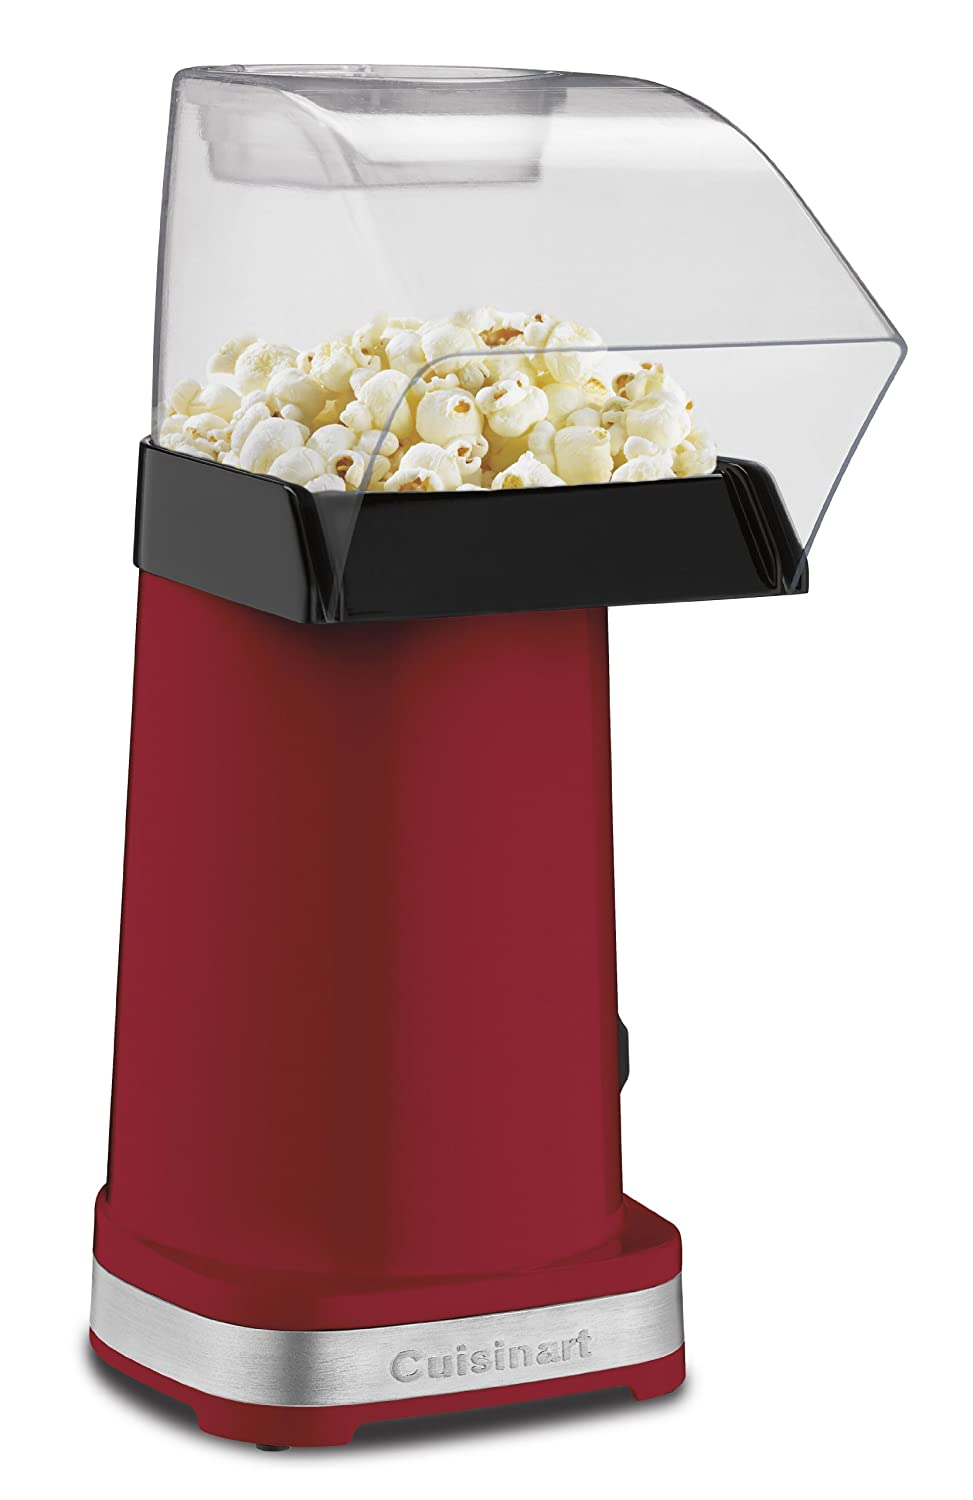 Cuisinart CPM-100 Hot Air Popcorn Machine Black Friday Deal 2019